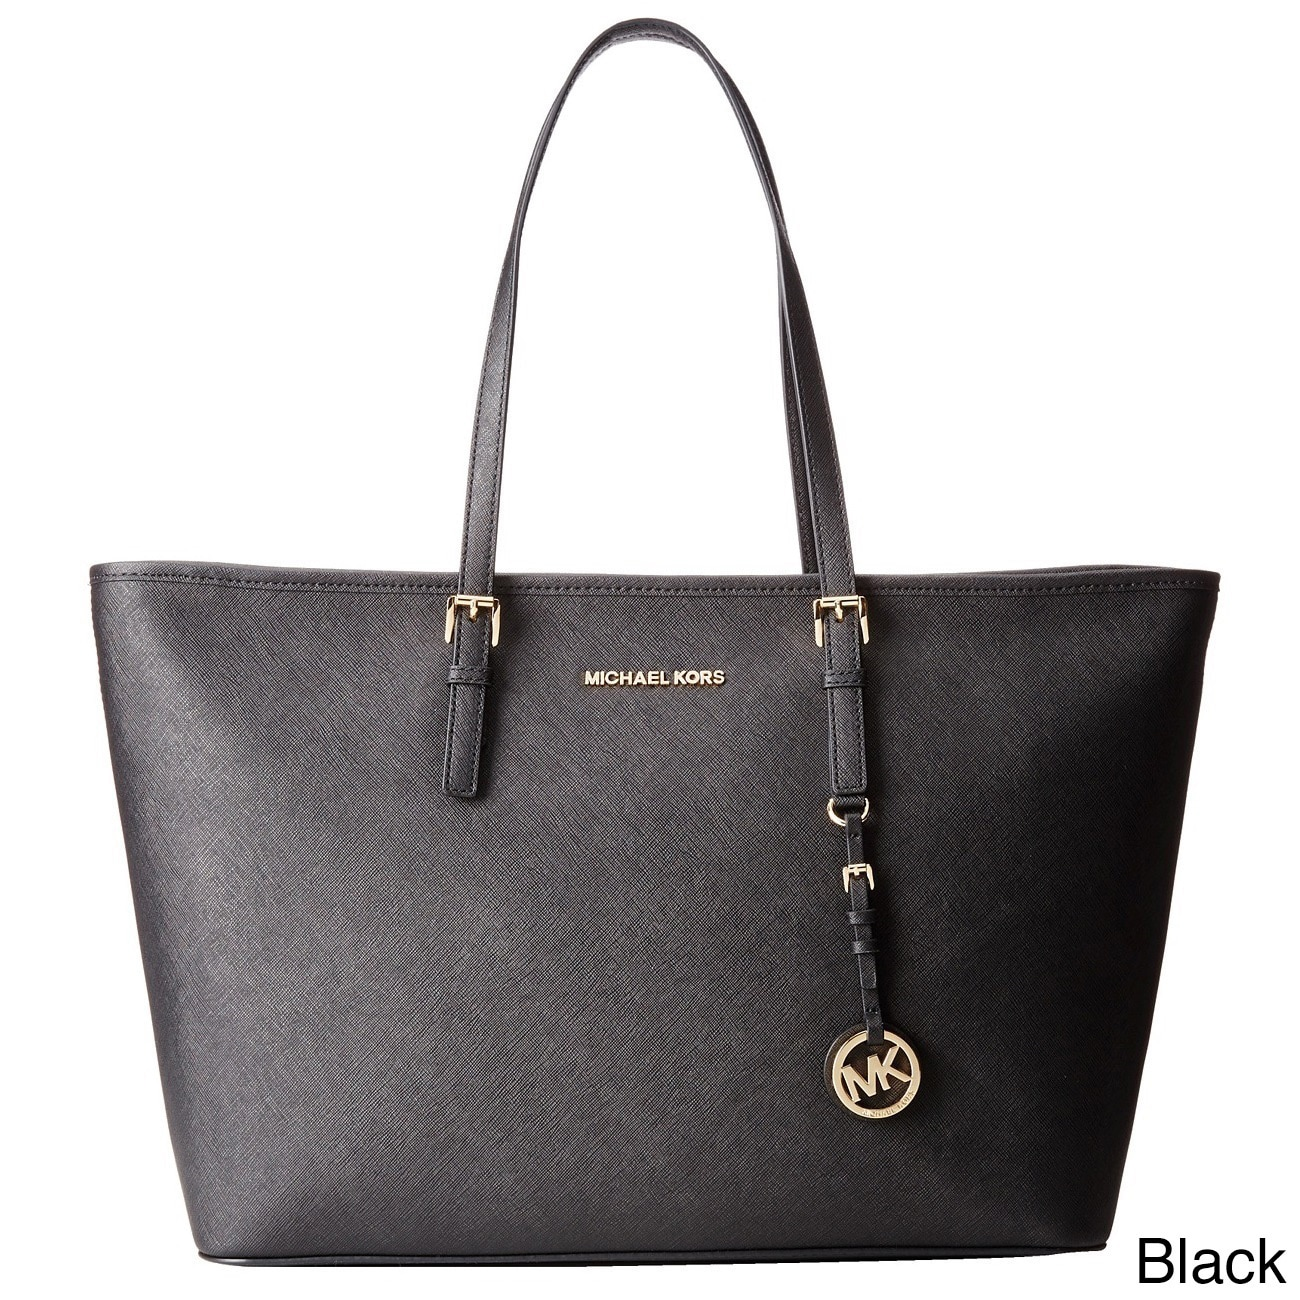 ebd42d922249f5 Shop Michael Kors Jet Set Medium Saffiano Leather Tote Bag - On Sale - Free  Shipping Today - Overstock - 10701567